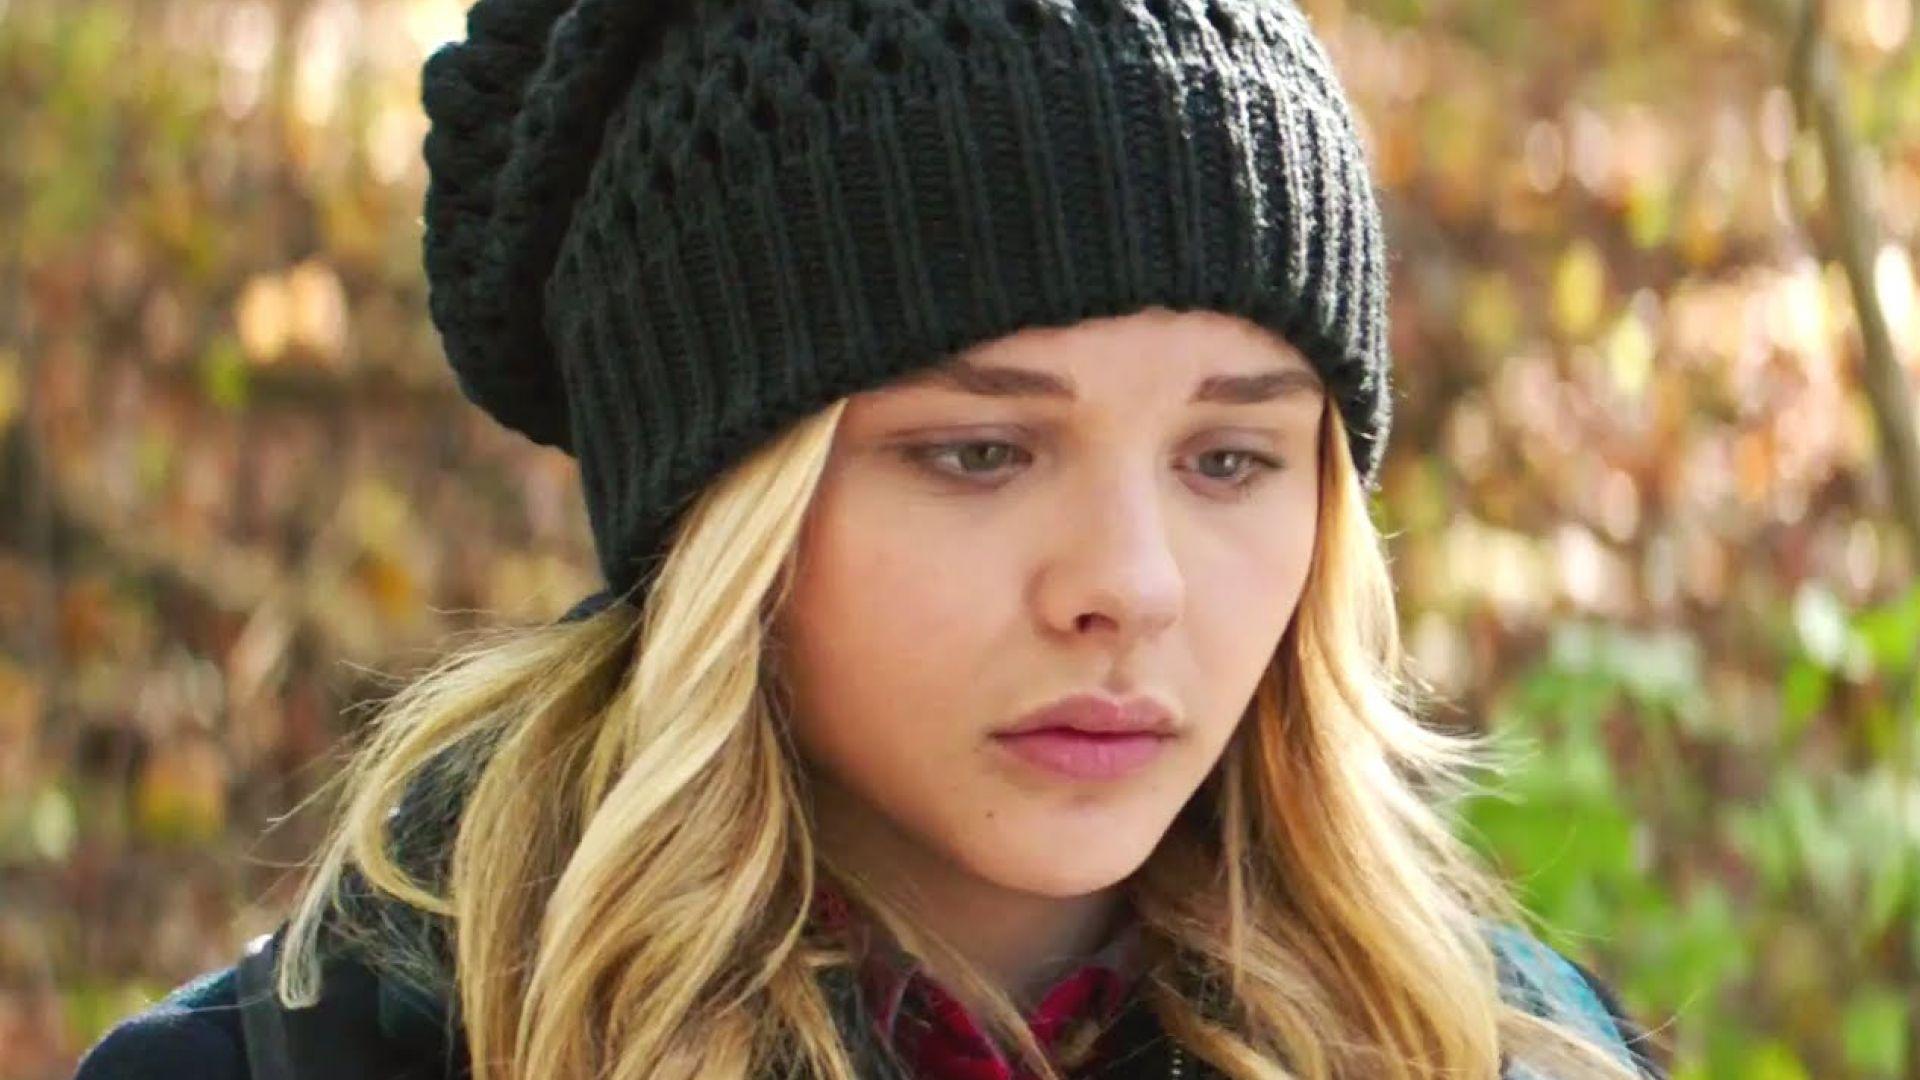 Aliens invade in new trailer for 'The 5th Wave' with Chloe G